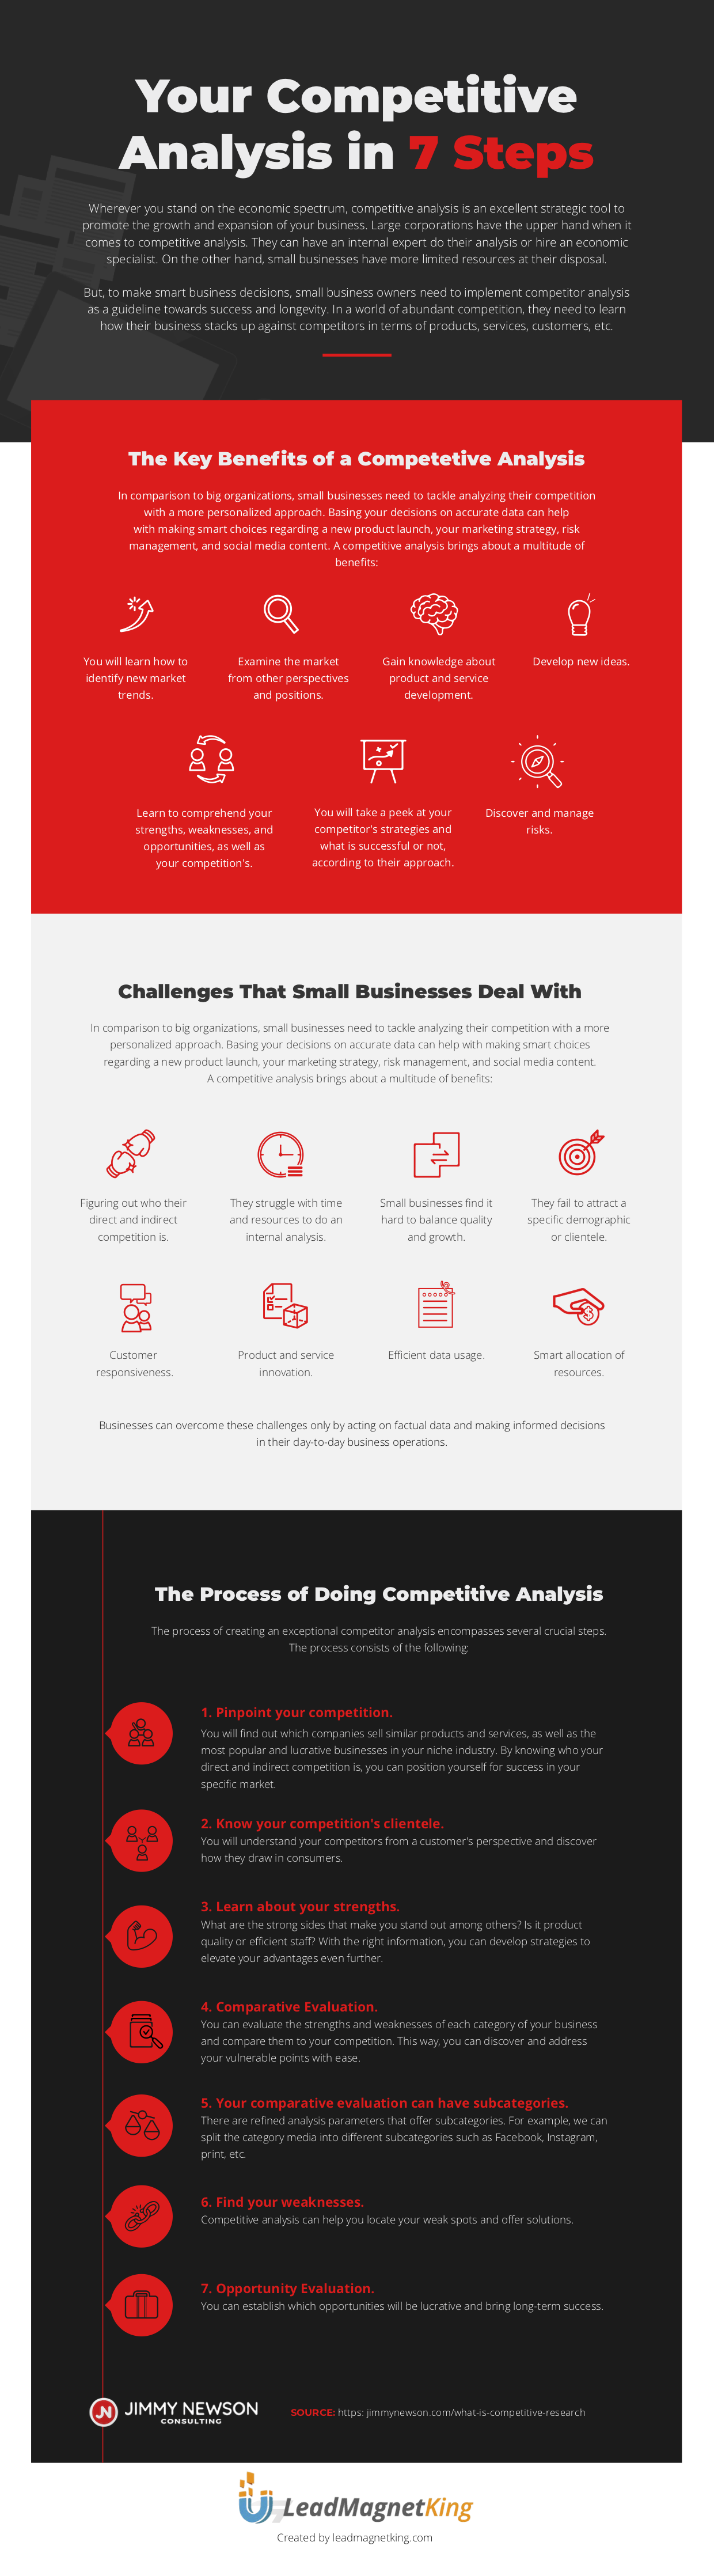 Your Competitive Analysis in 7 Steps Infographic - Jimmy Newson Consulting